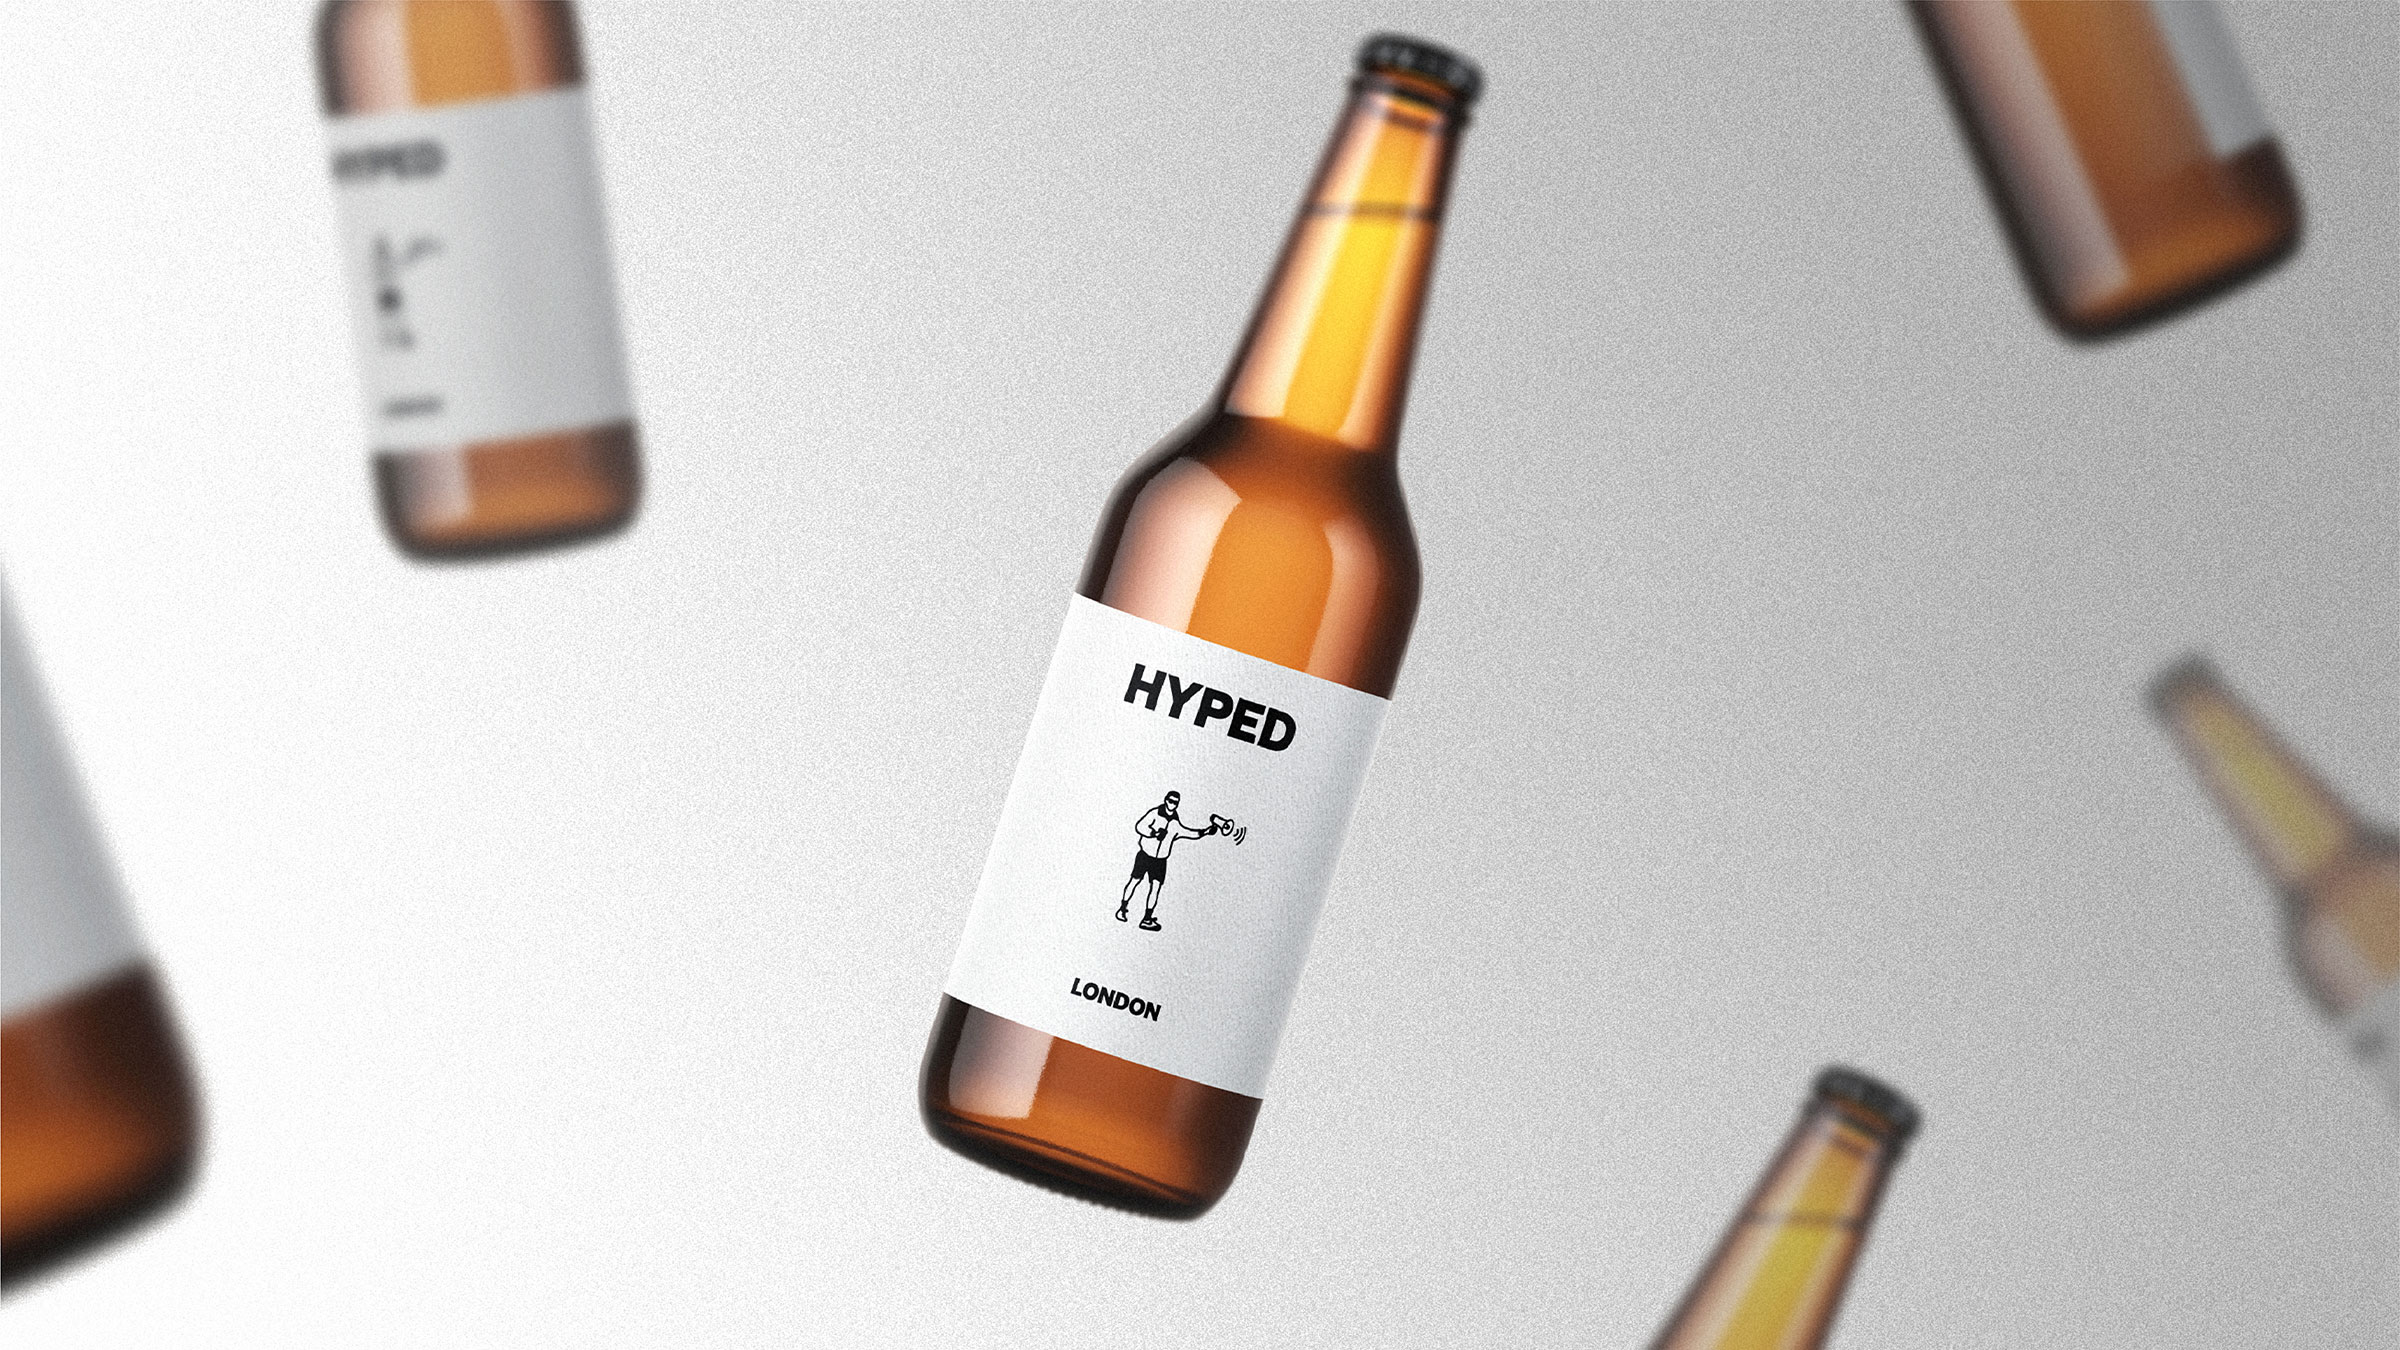 Hyped London Beer Bottles